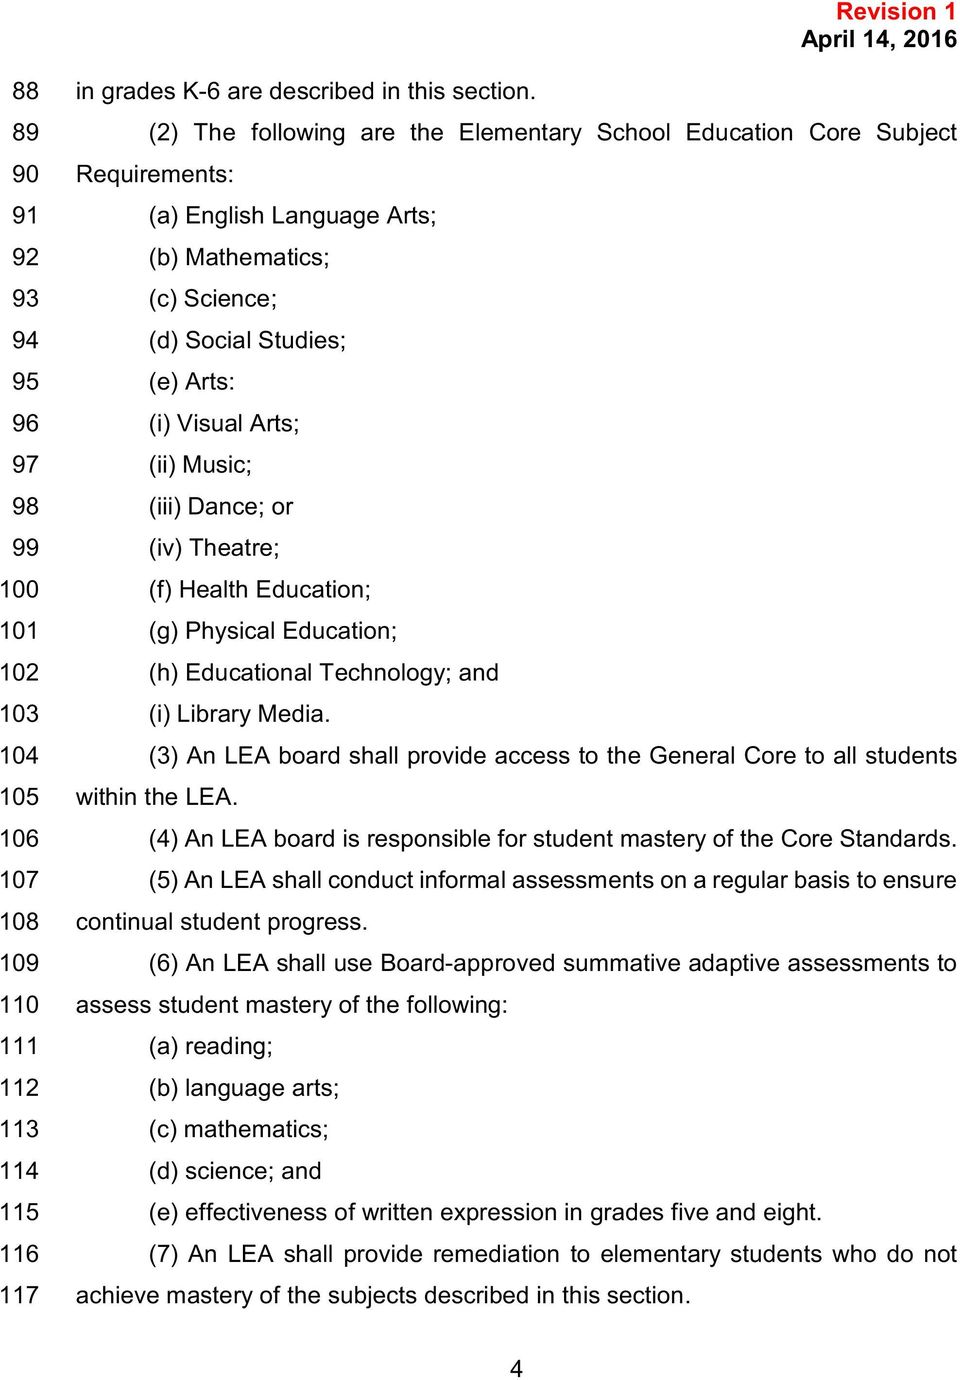 Visual Arts; 97 (ii) Music; 98 (iii) Dance; or 99 (iv) Theatre; 100 (f) Health Education; 101 (g) Physical Education; 102 (h) Educational Technology; and 103 (i) Library Media.